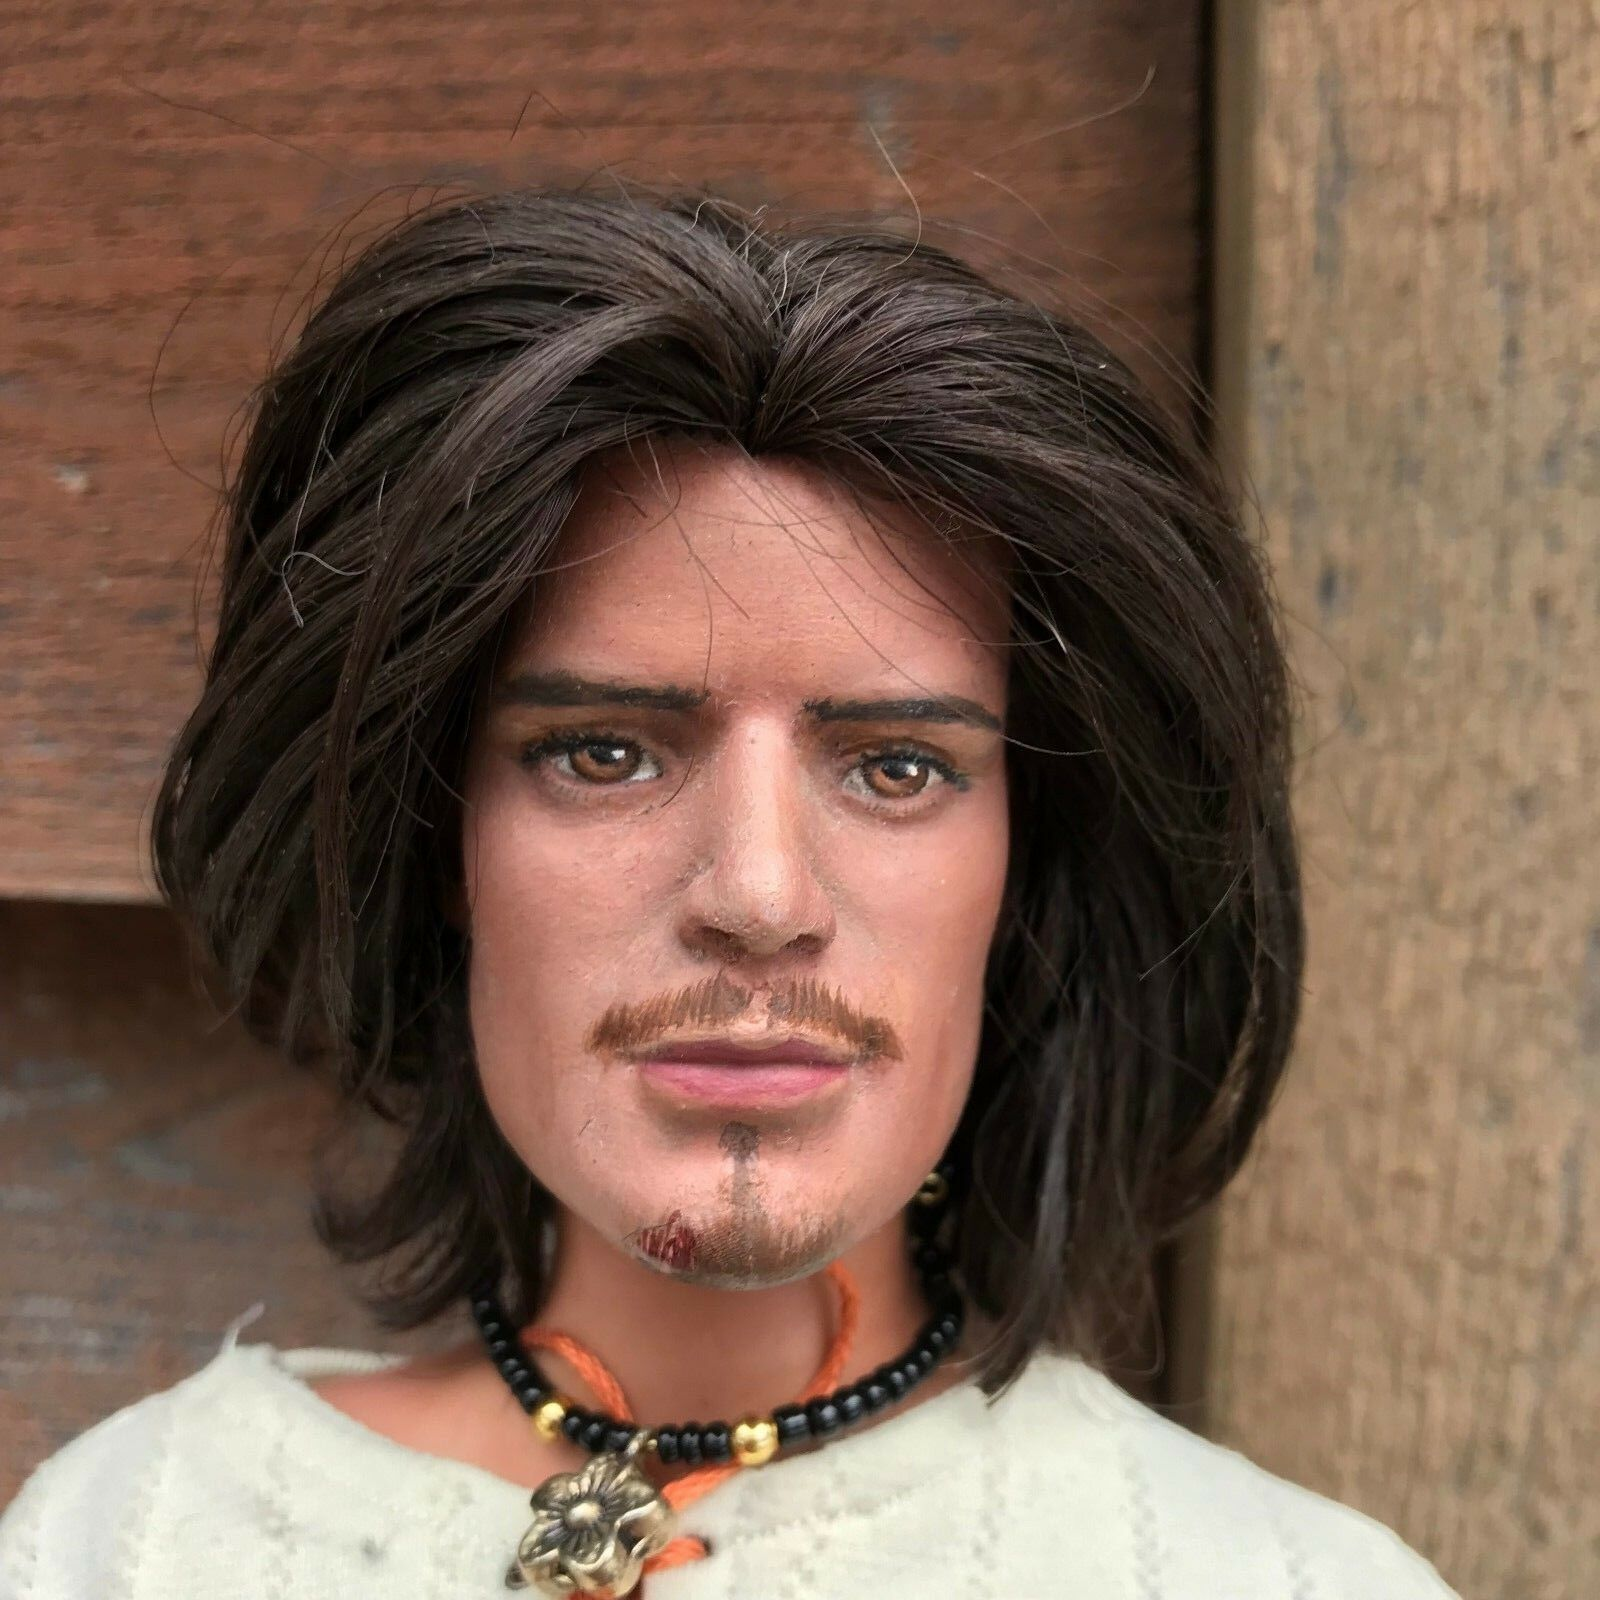 OOAK ORLANDO BLOOM REPAINT BY MARK ANTHONY TONNER CLOSED 2018 payments possible